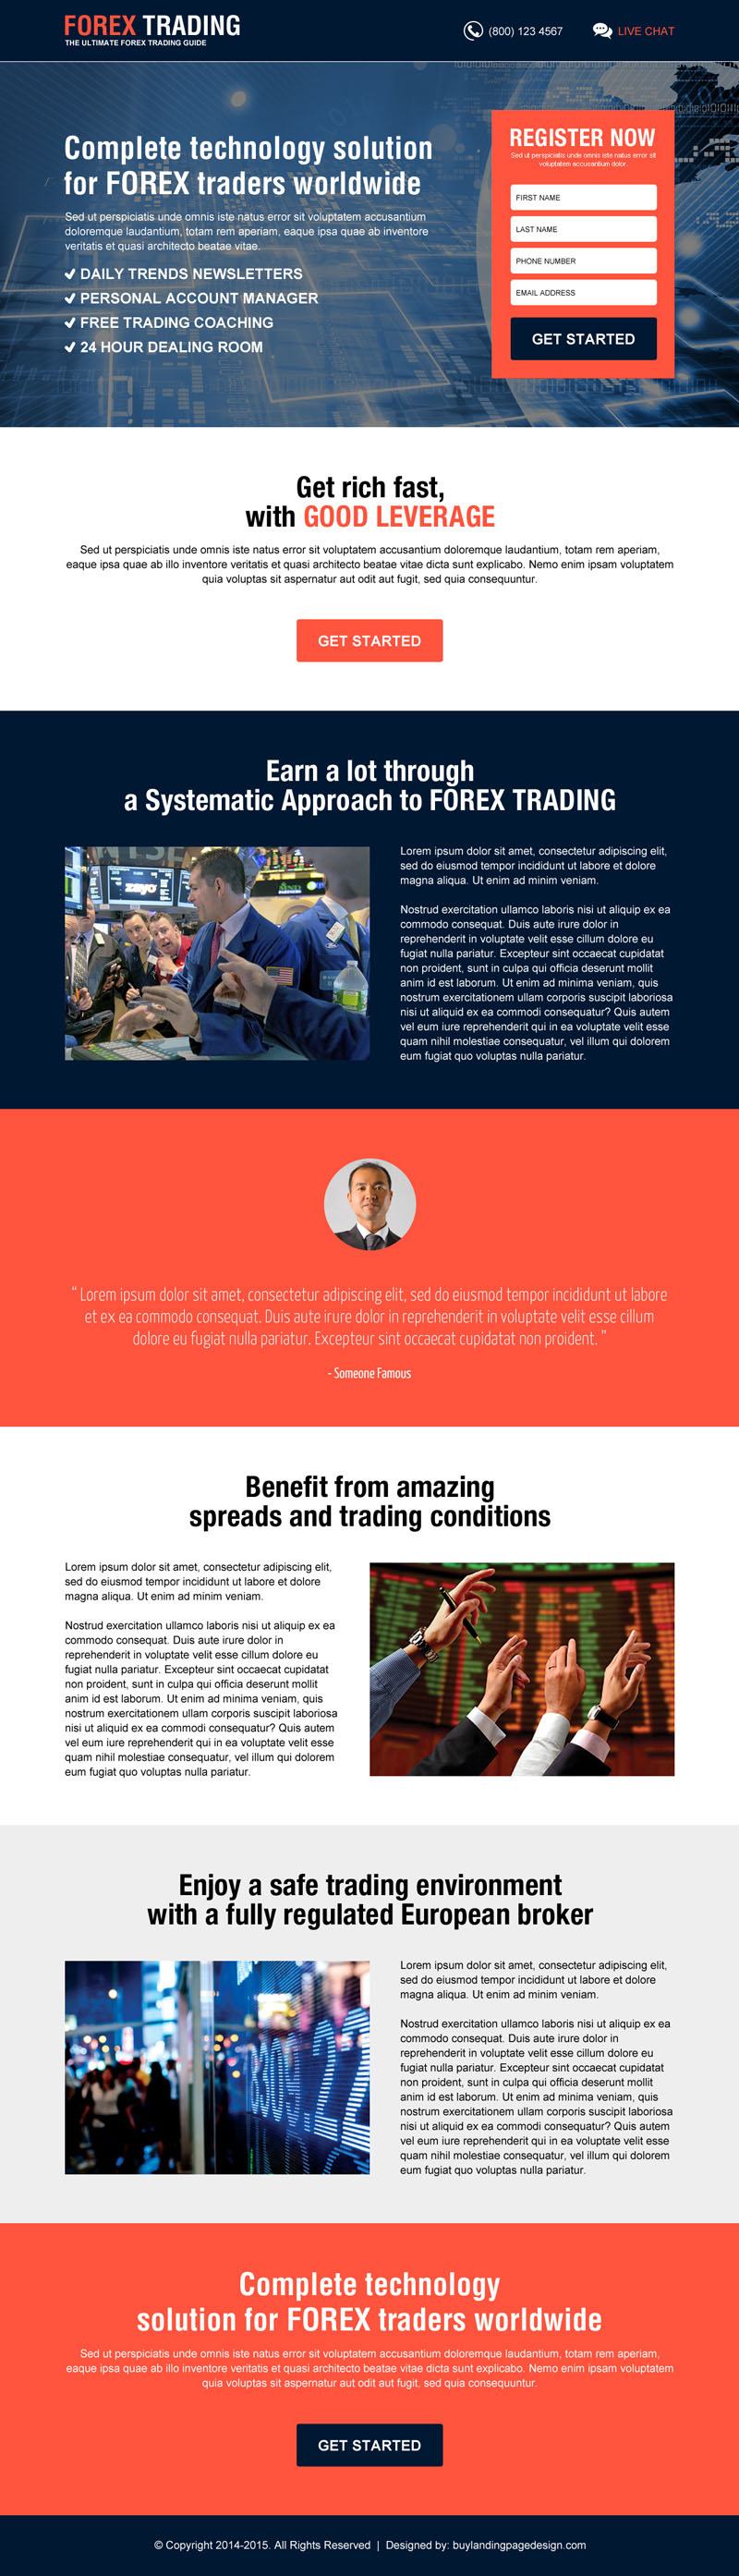 best-forex-trading-guide-lead-generation-converting-landing-page-design-template-006